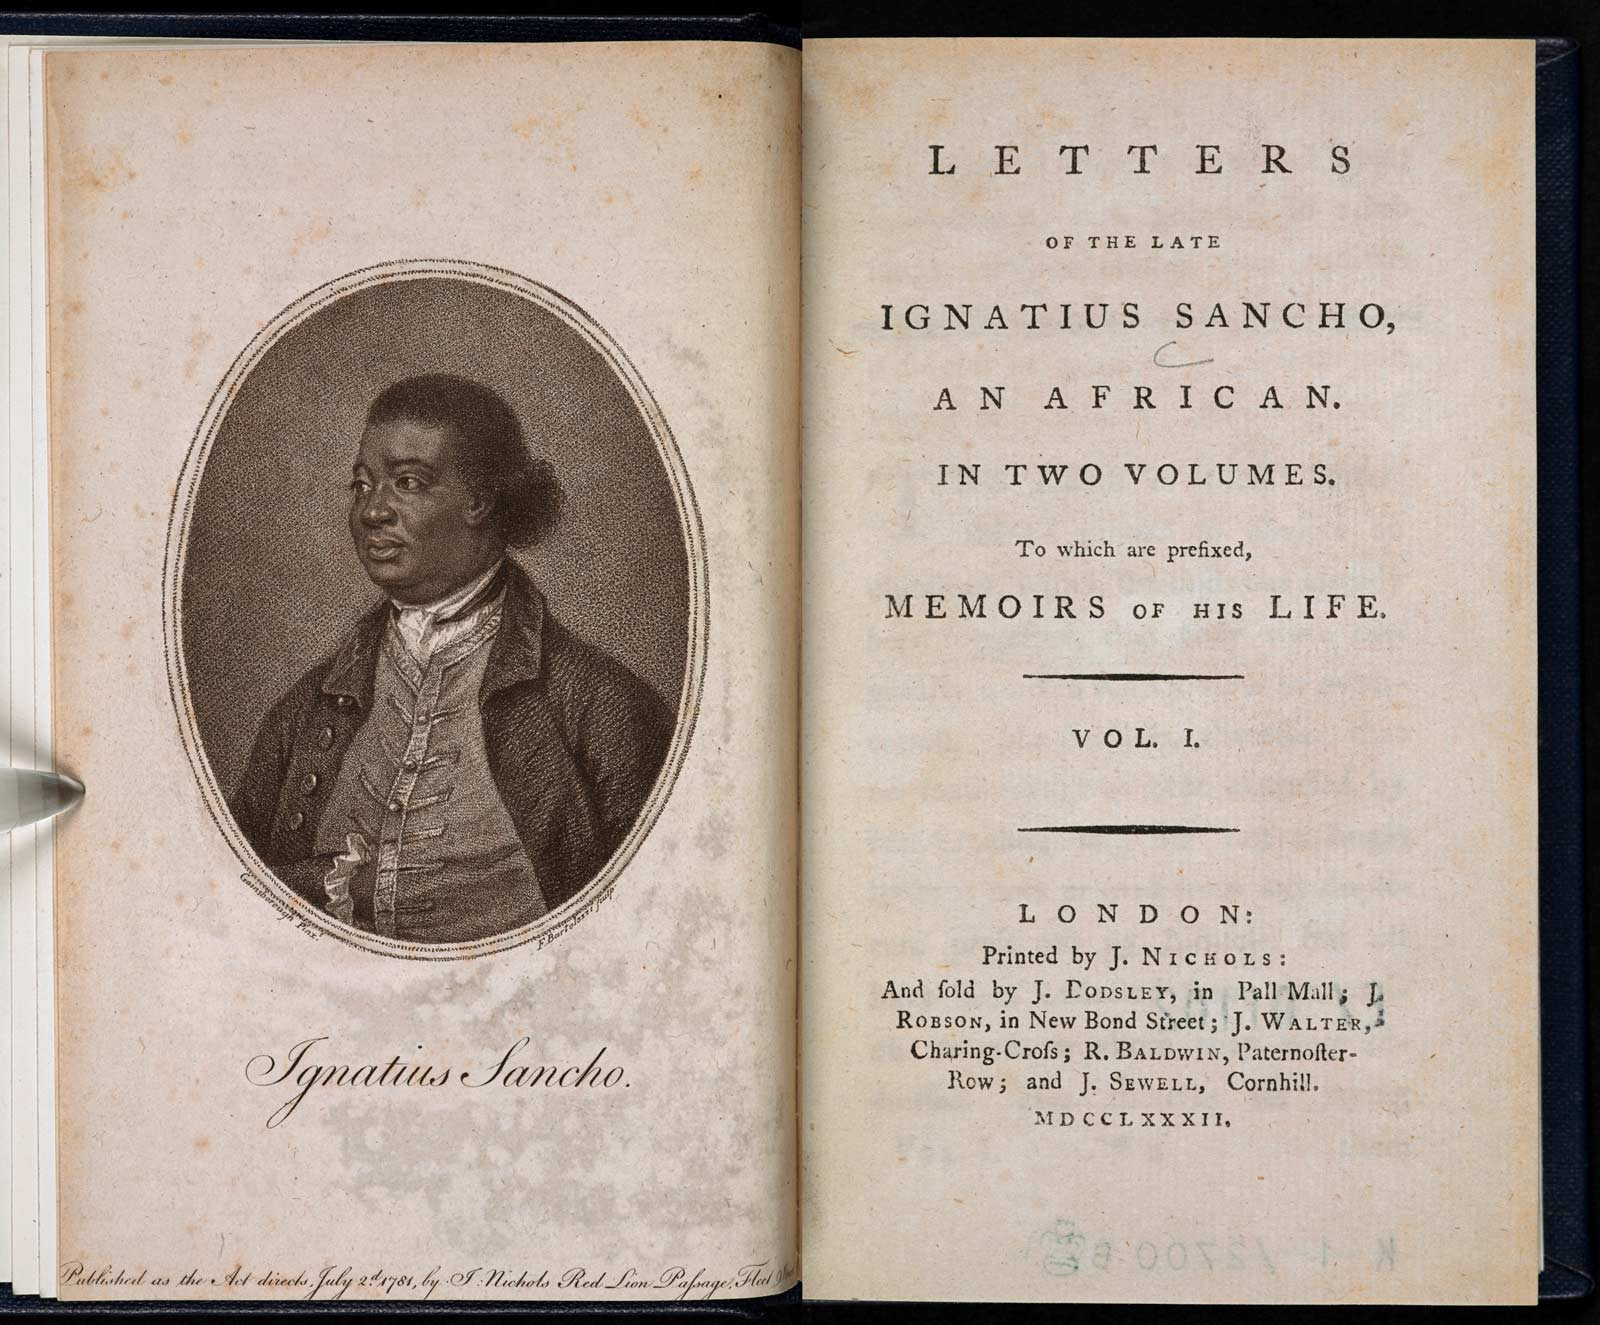 Frontispiece and title-page to The Letters of the Late Ignatius Sancho, published posthumously in London, 1782.